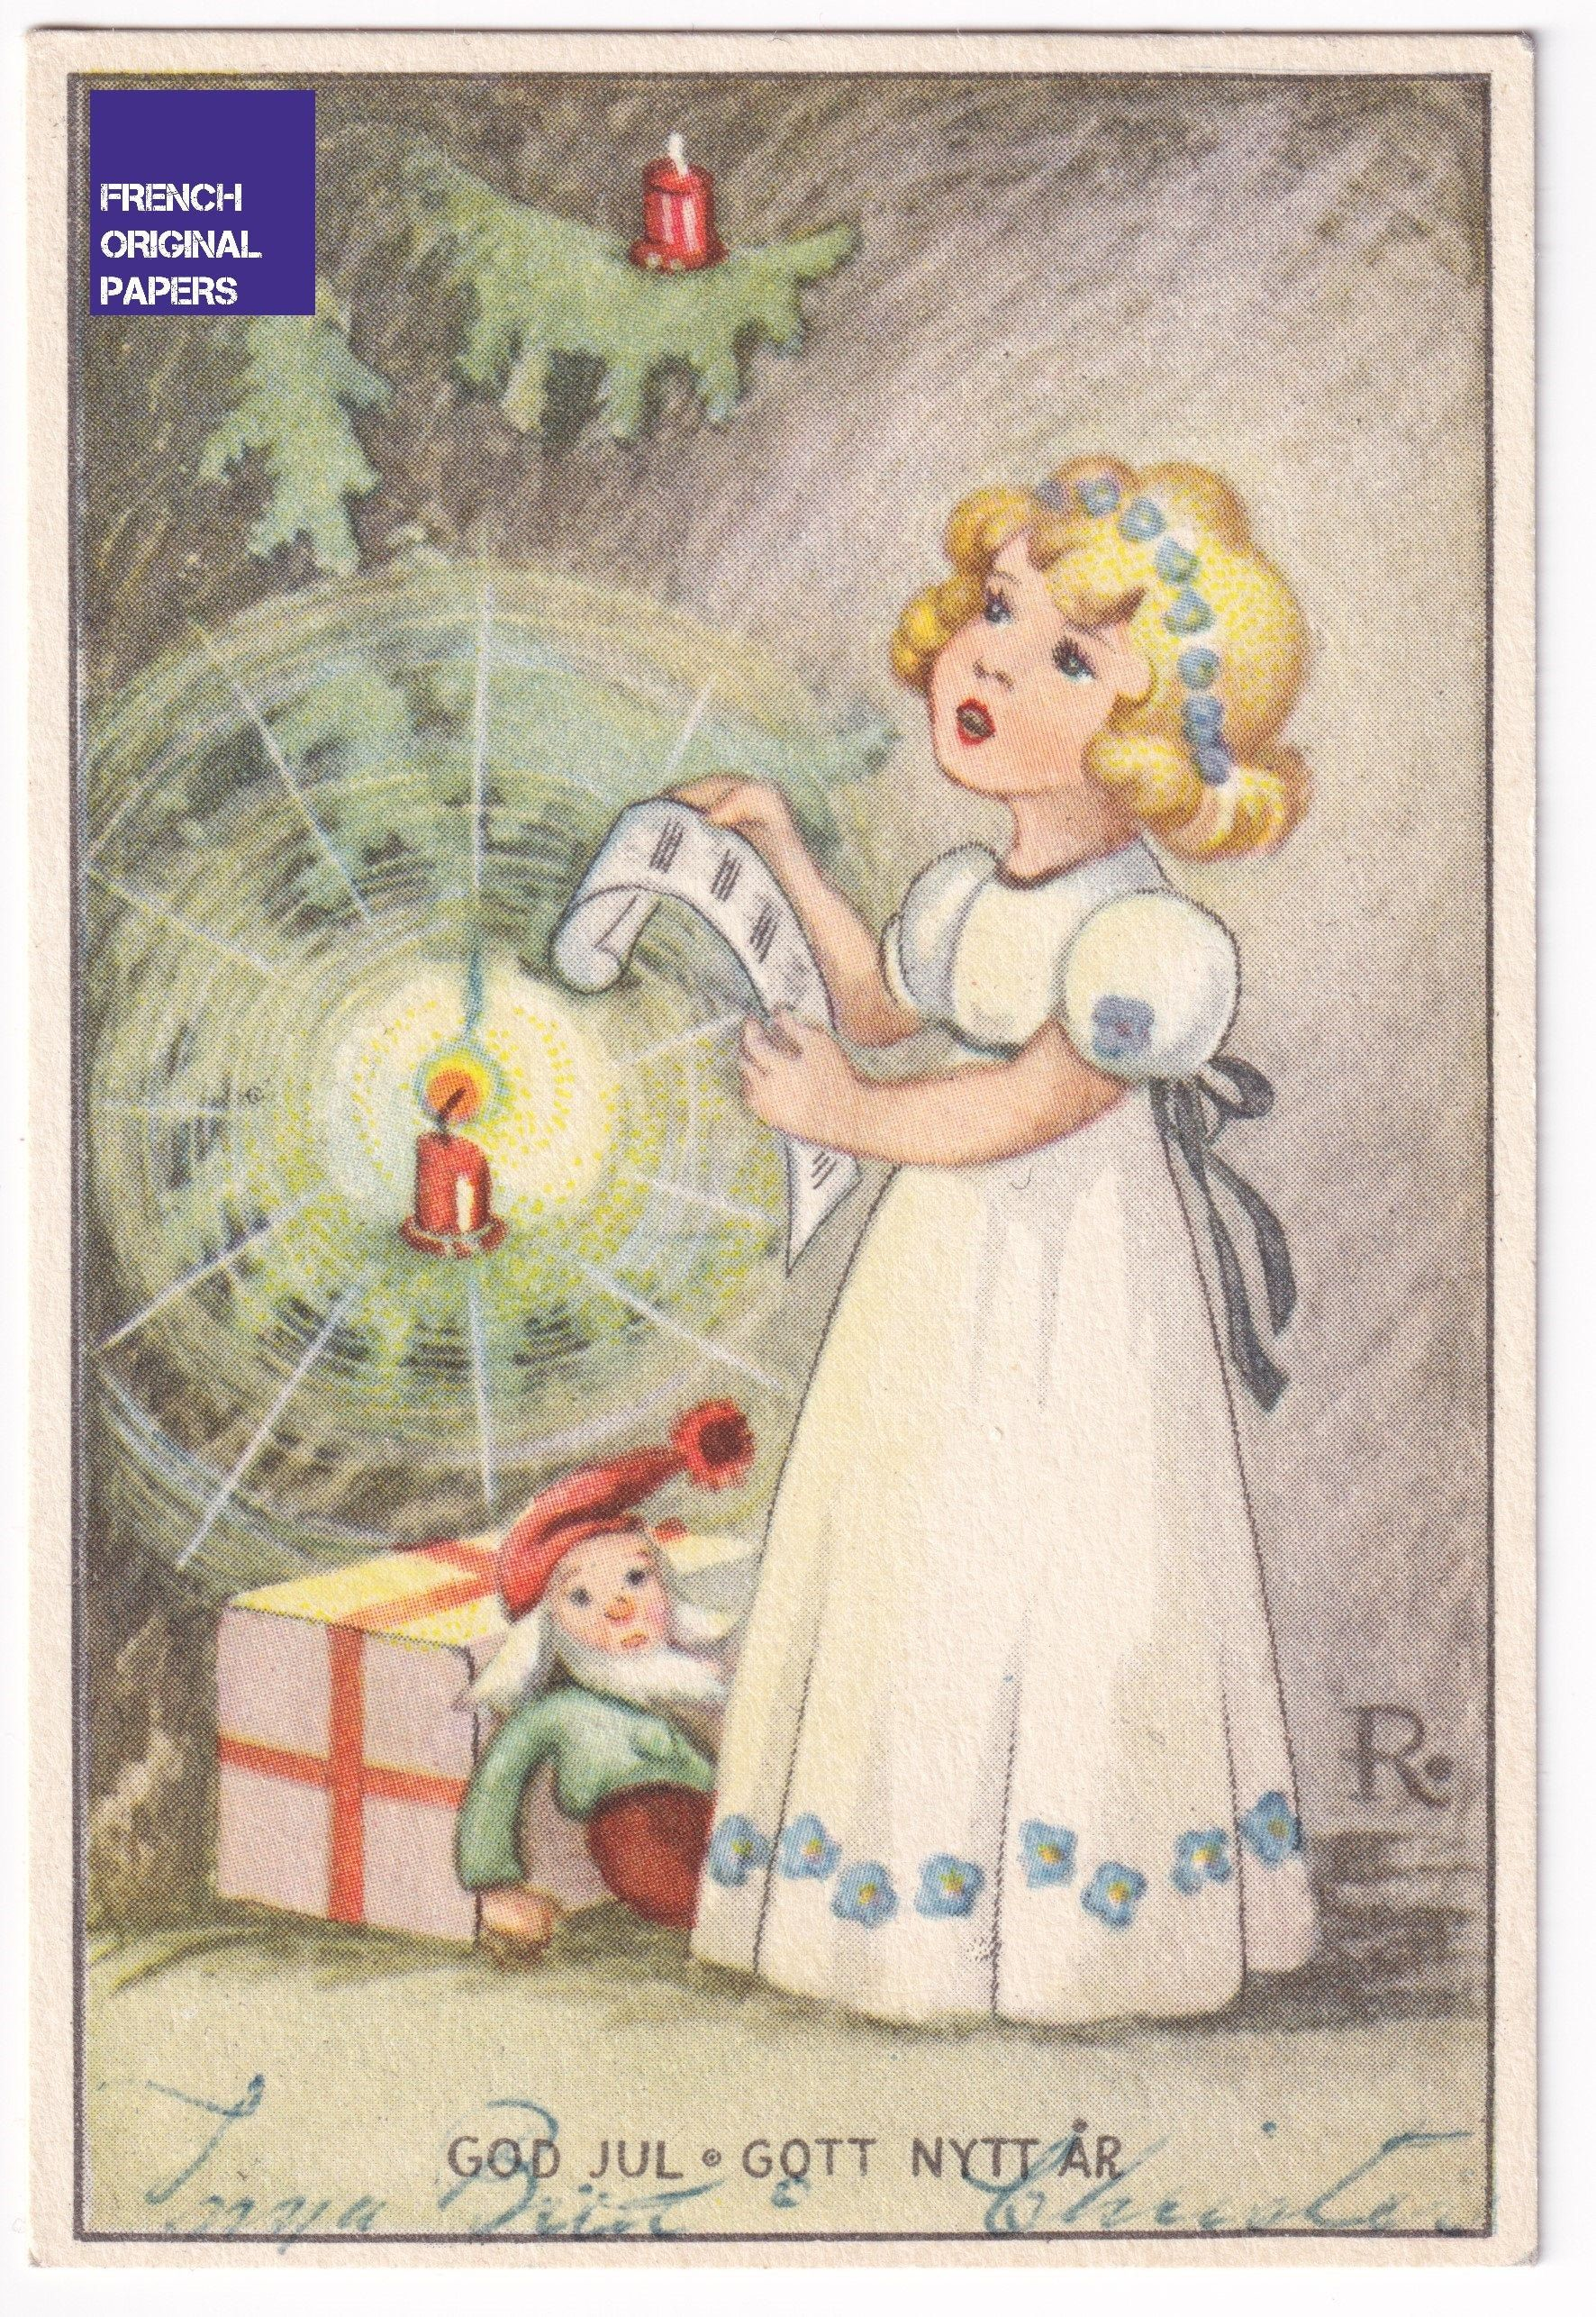 Merry Christmas God Jul 1951 Old Small Swedish Greeting Postcard Little Girl With Santa Claus Doll Gift Scandinavian Vintage Star Tree In 2020 Santa Claus Doll Postcard Vintage Christmas